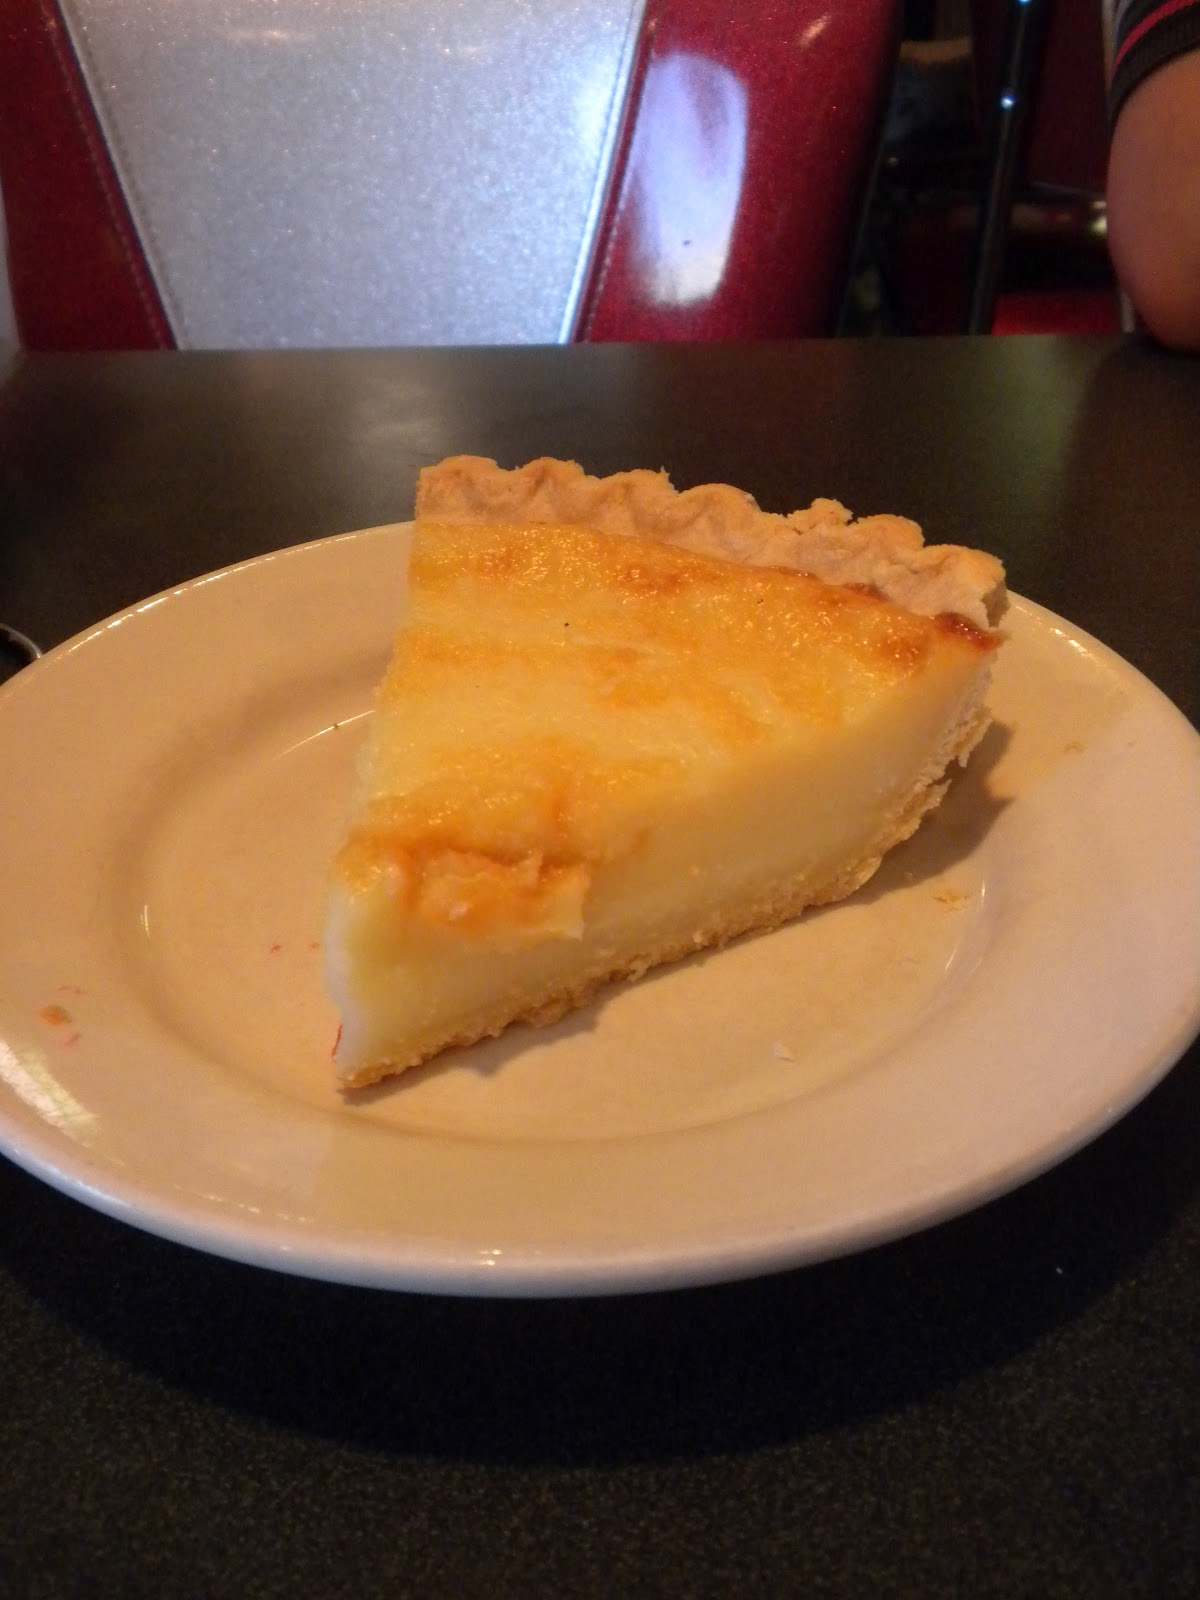 A slice of Wick's Sugar Cream Pie